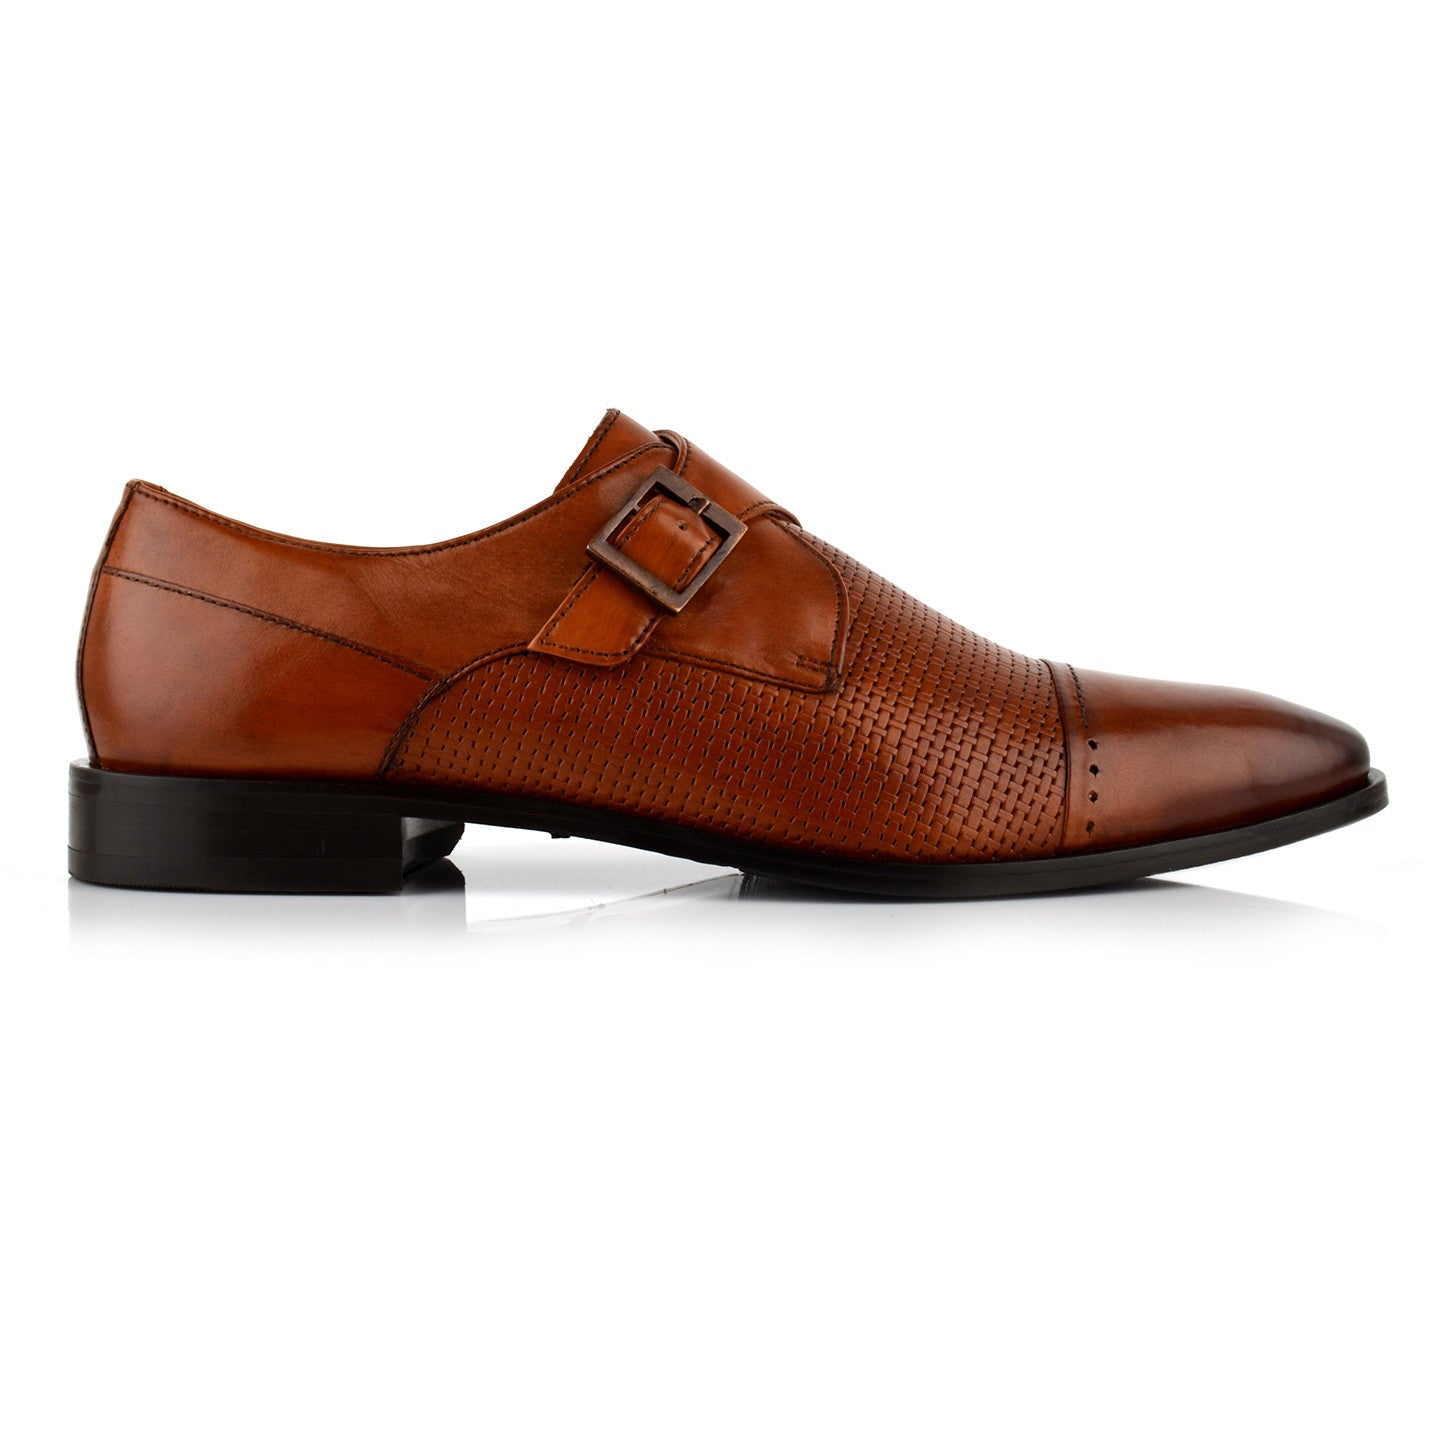 LM540 - Language Sigillo Men's Dress Tan Monk Shoes